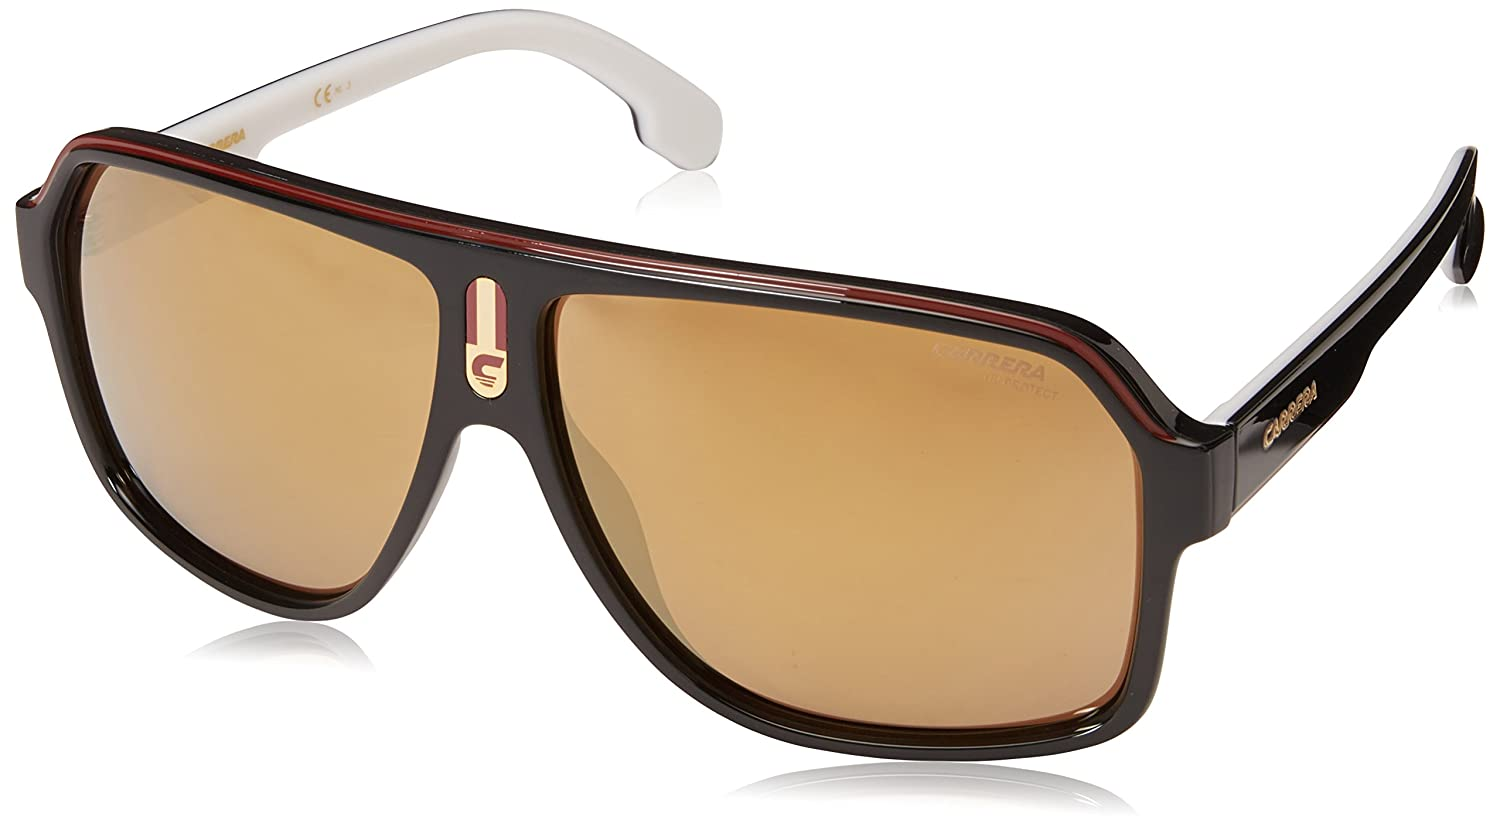 6c93b60004 Carrera Men's 1001/s Aviator Sunglasses, Blk Redgd, 62 mm: Carrera:  Amazon.co.uk: Clothing